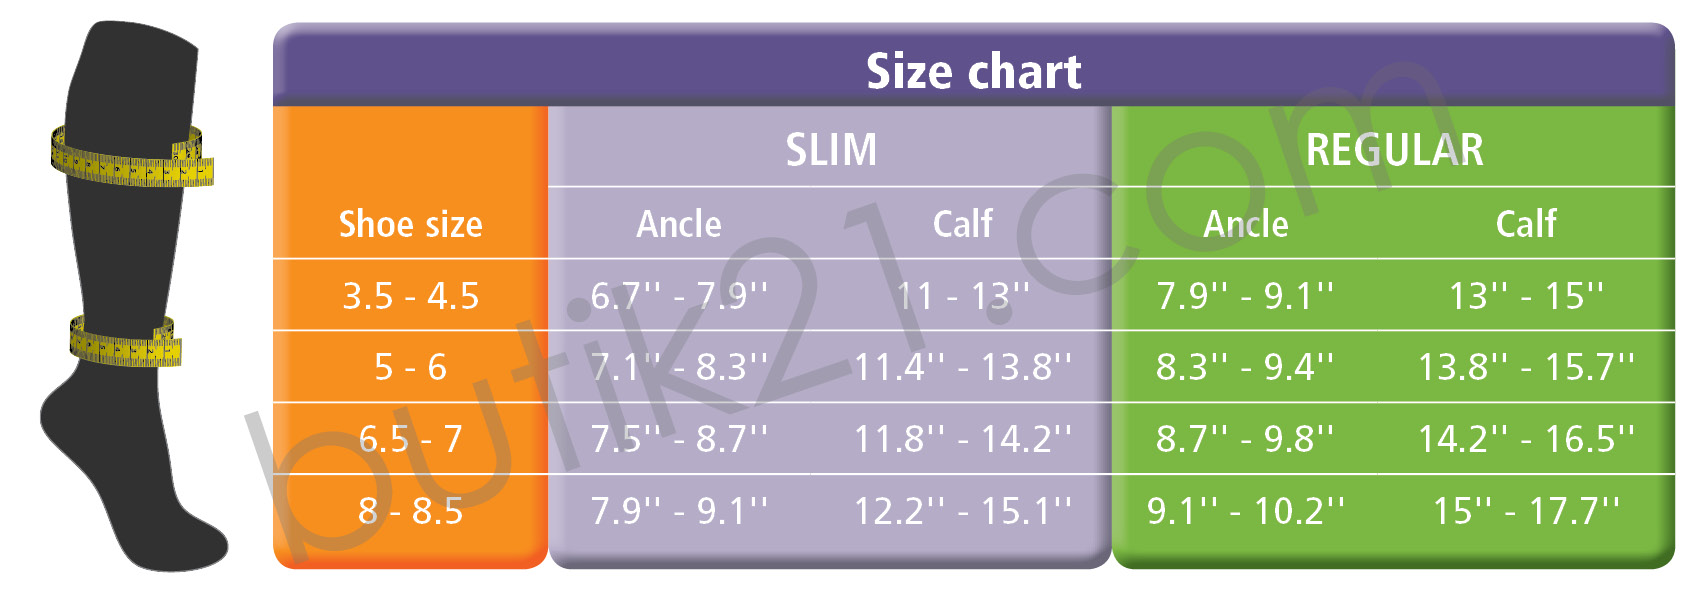 Size chart compression socks Everyday Women